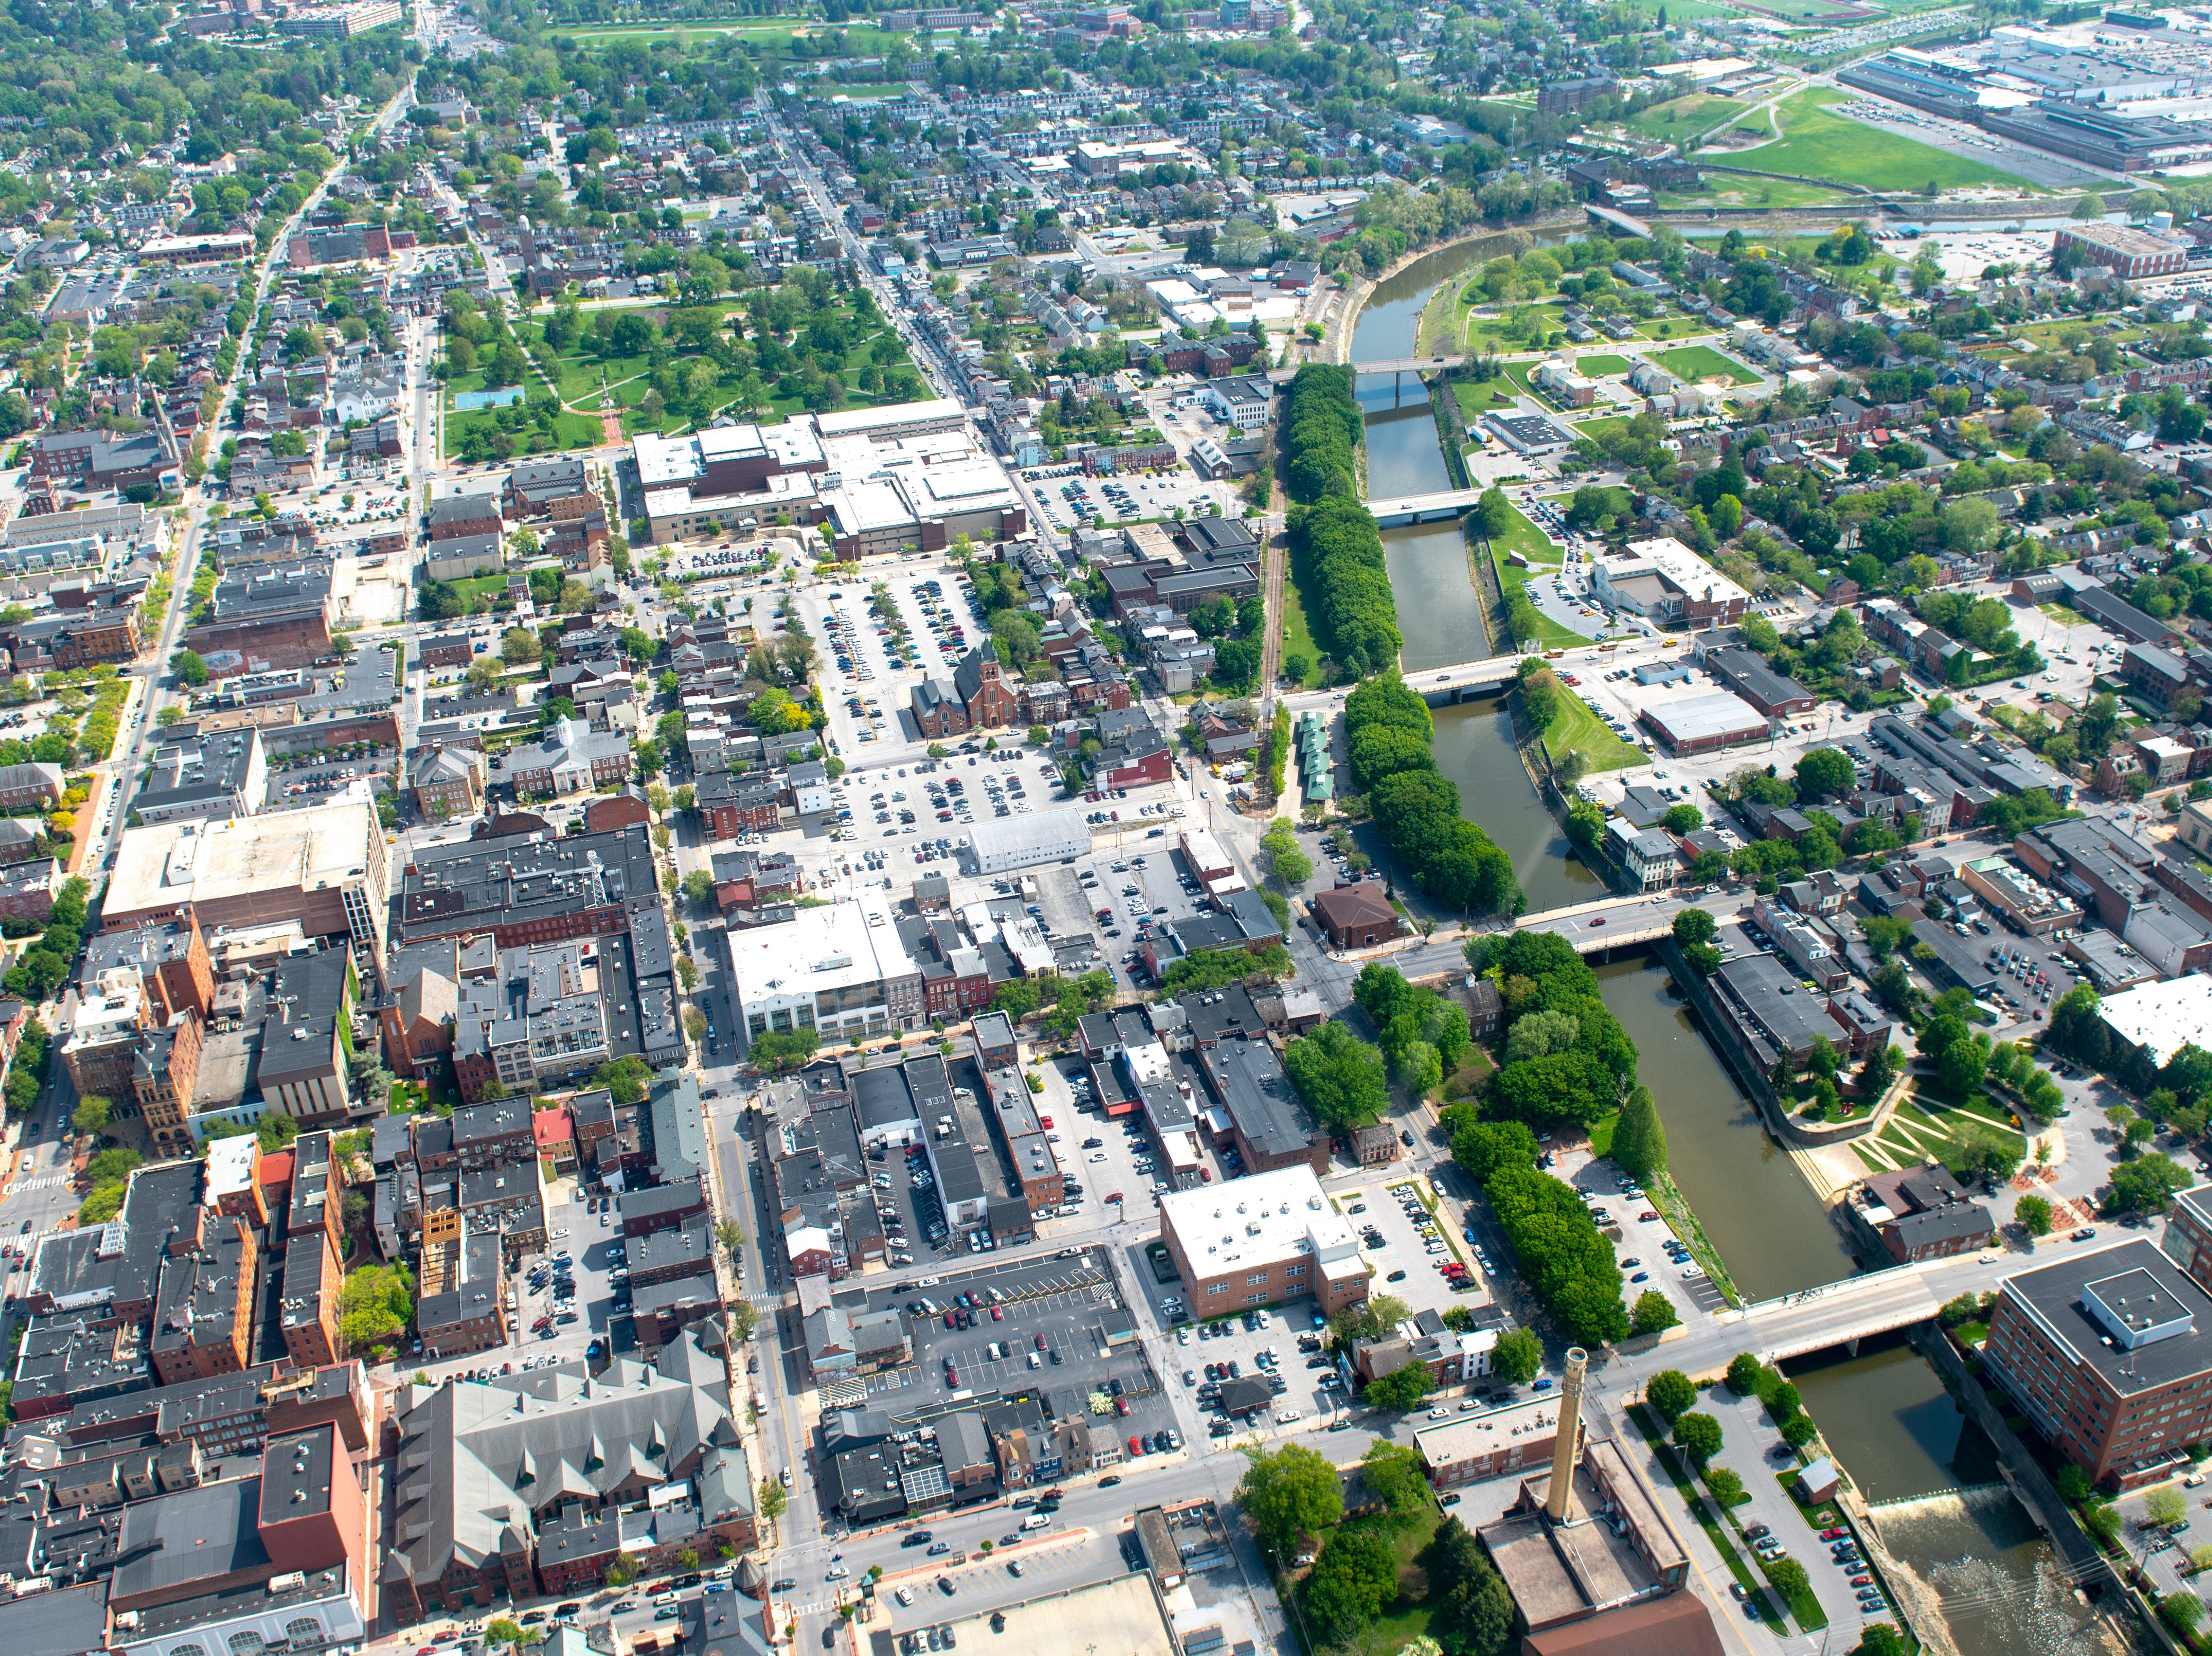 This is a birds eye view of downtown York. Cars look like tiny ants from this height, May 2, 2019.